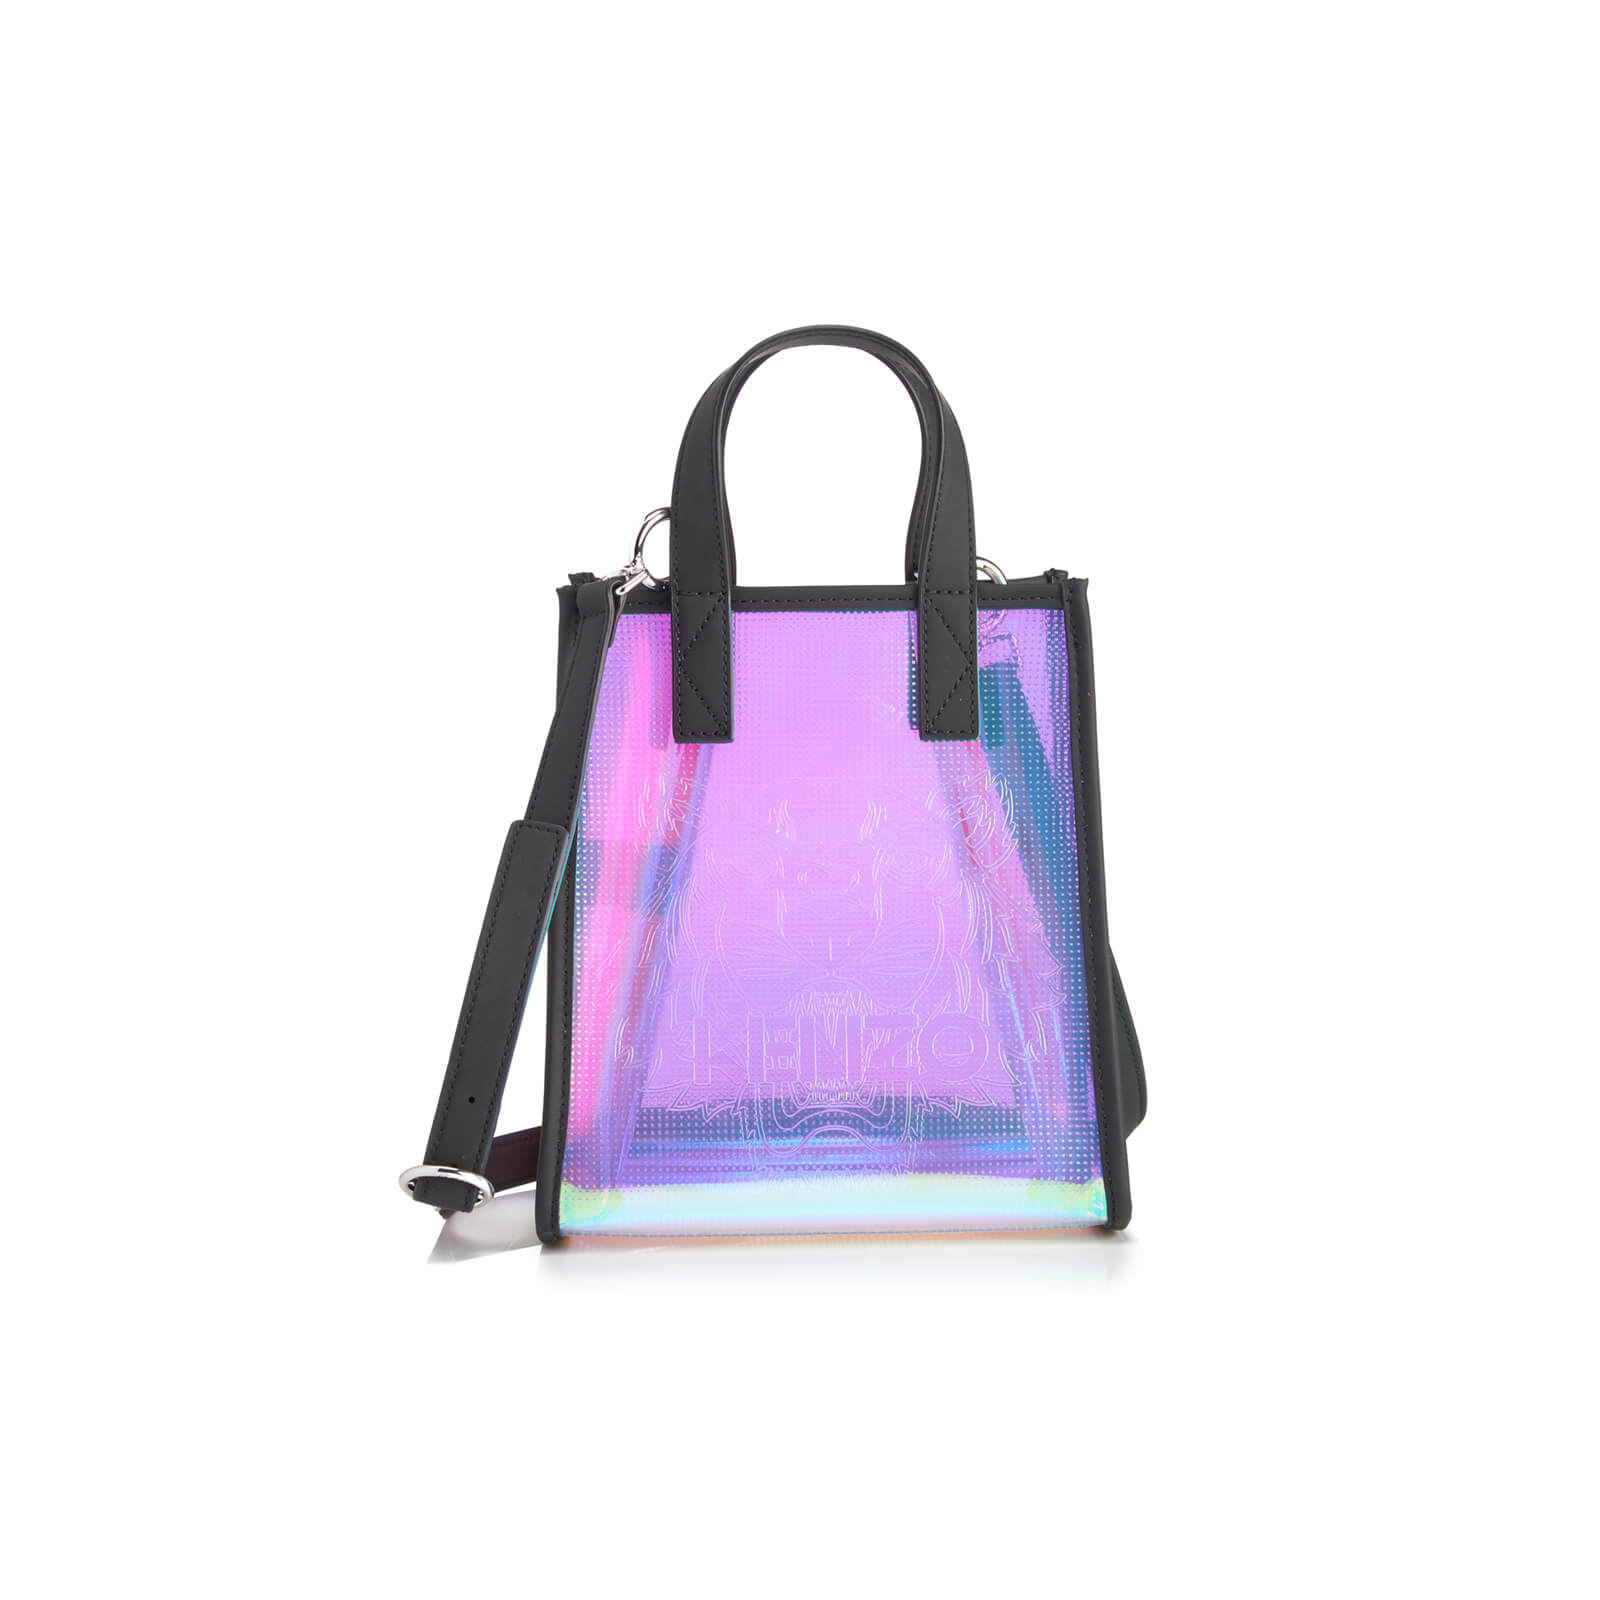 eeea7abe7d KENZO Women's Icons Mini Tiger Tote Bag - Iridescent - Free UK Delivery  over £50